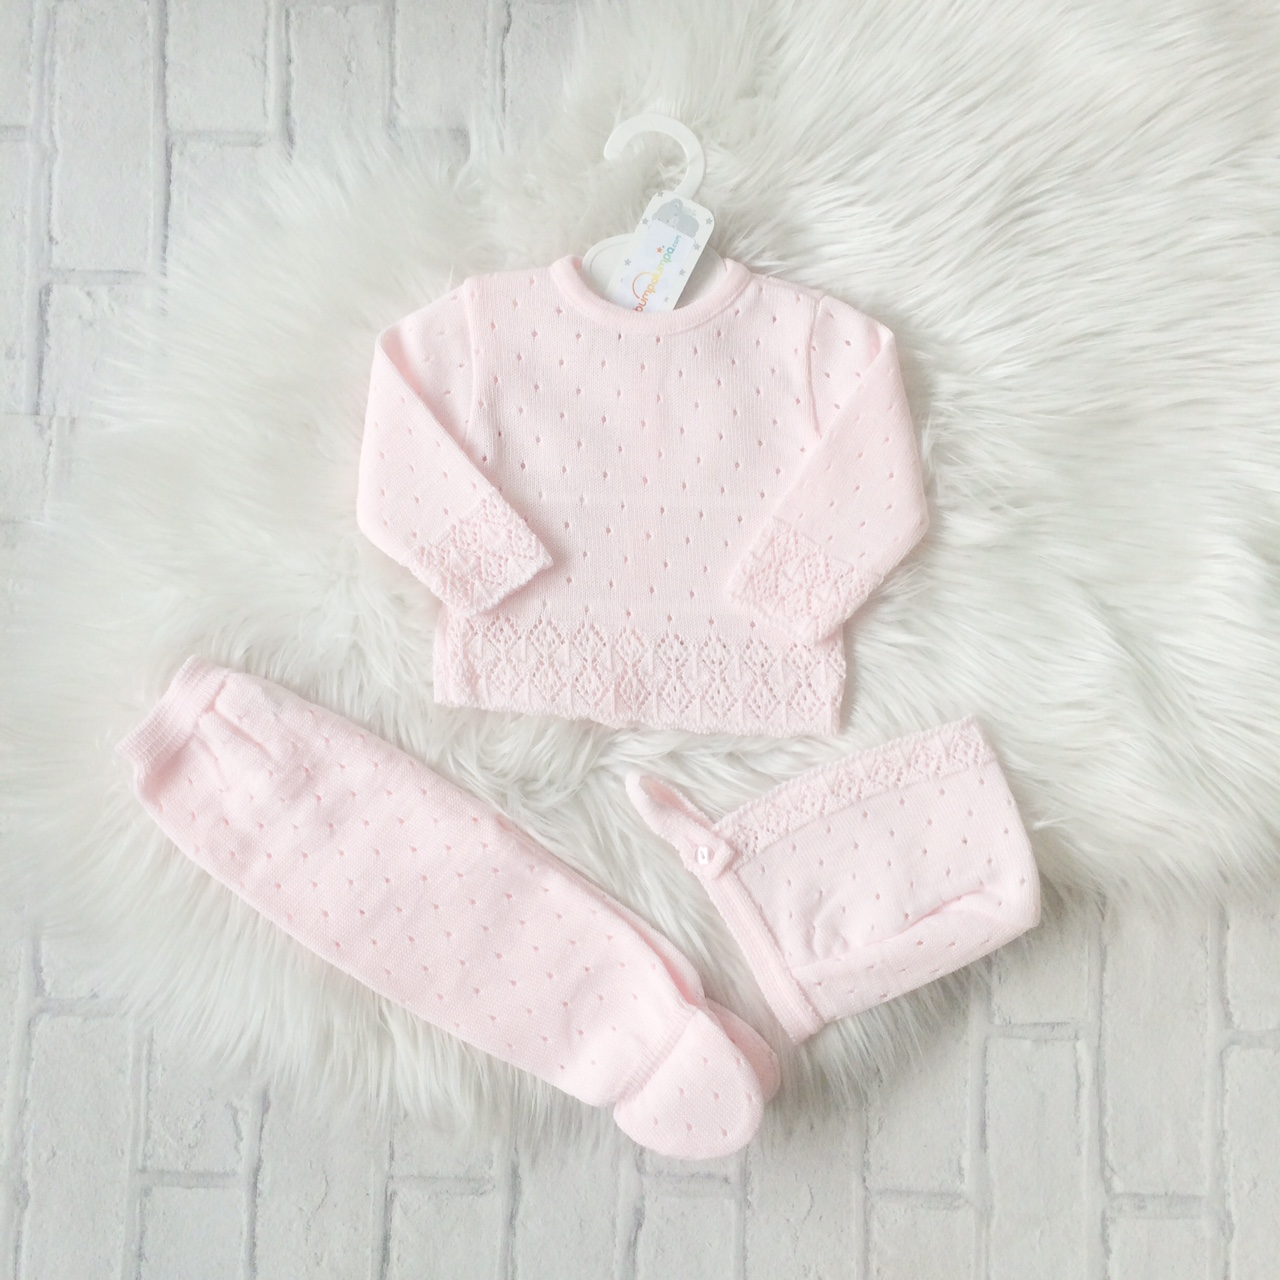 Baby Girls Baby Pink Outfit